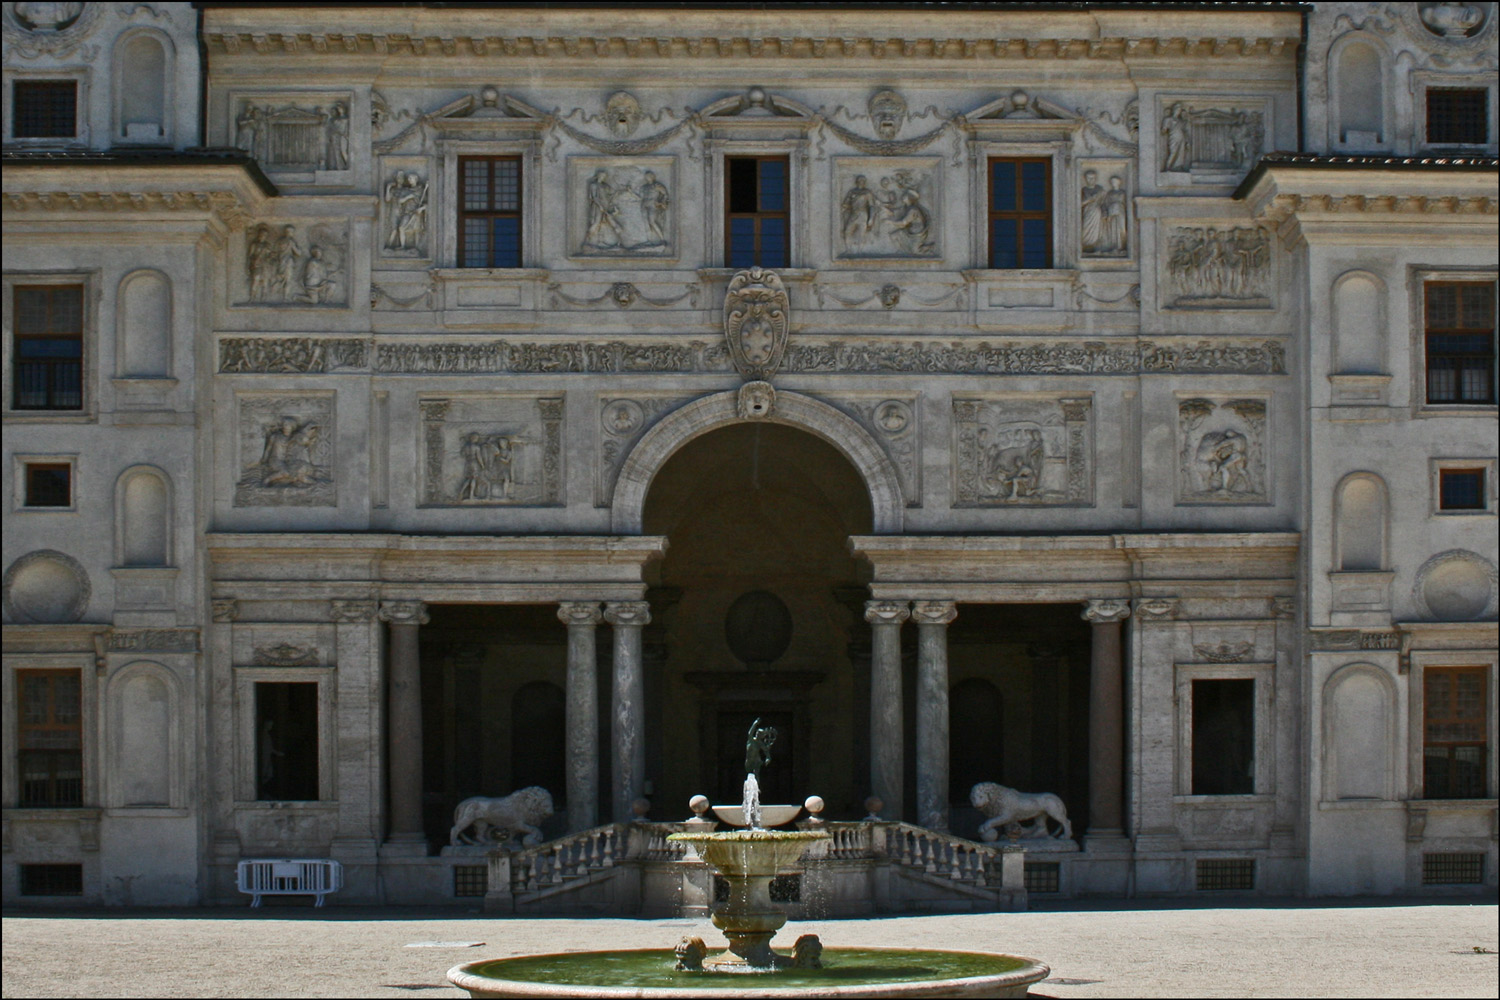 The Loggia of Villa Medici